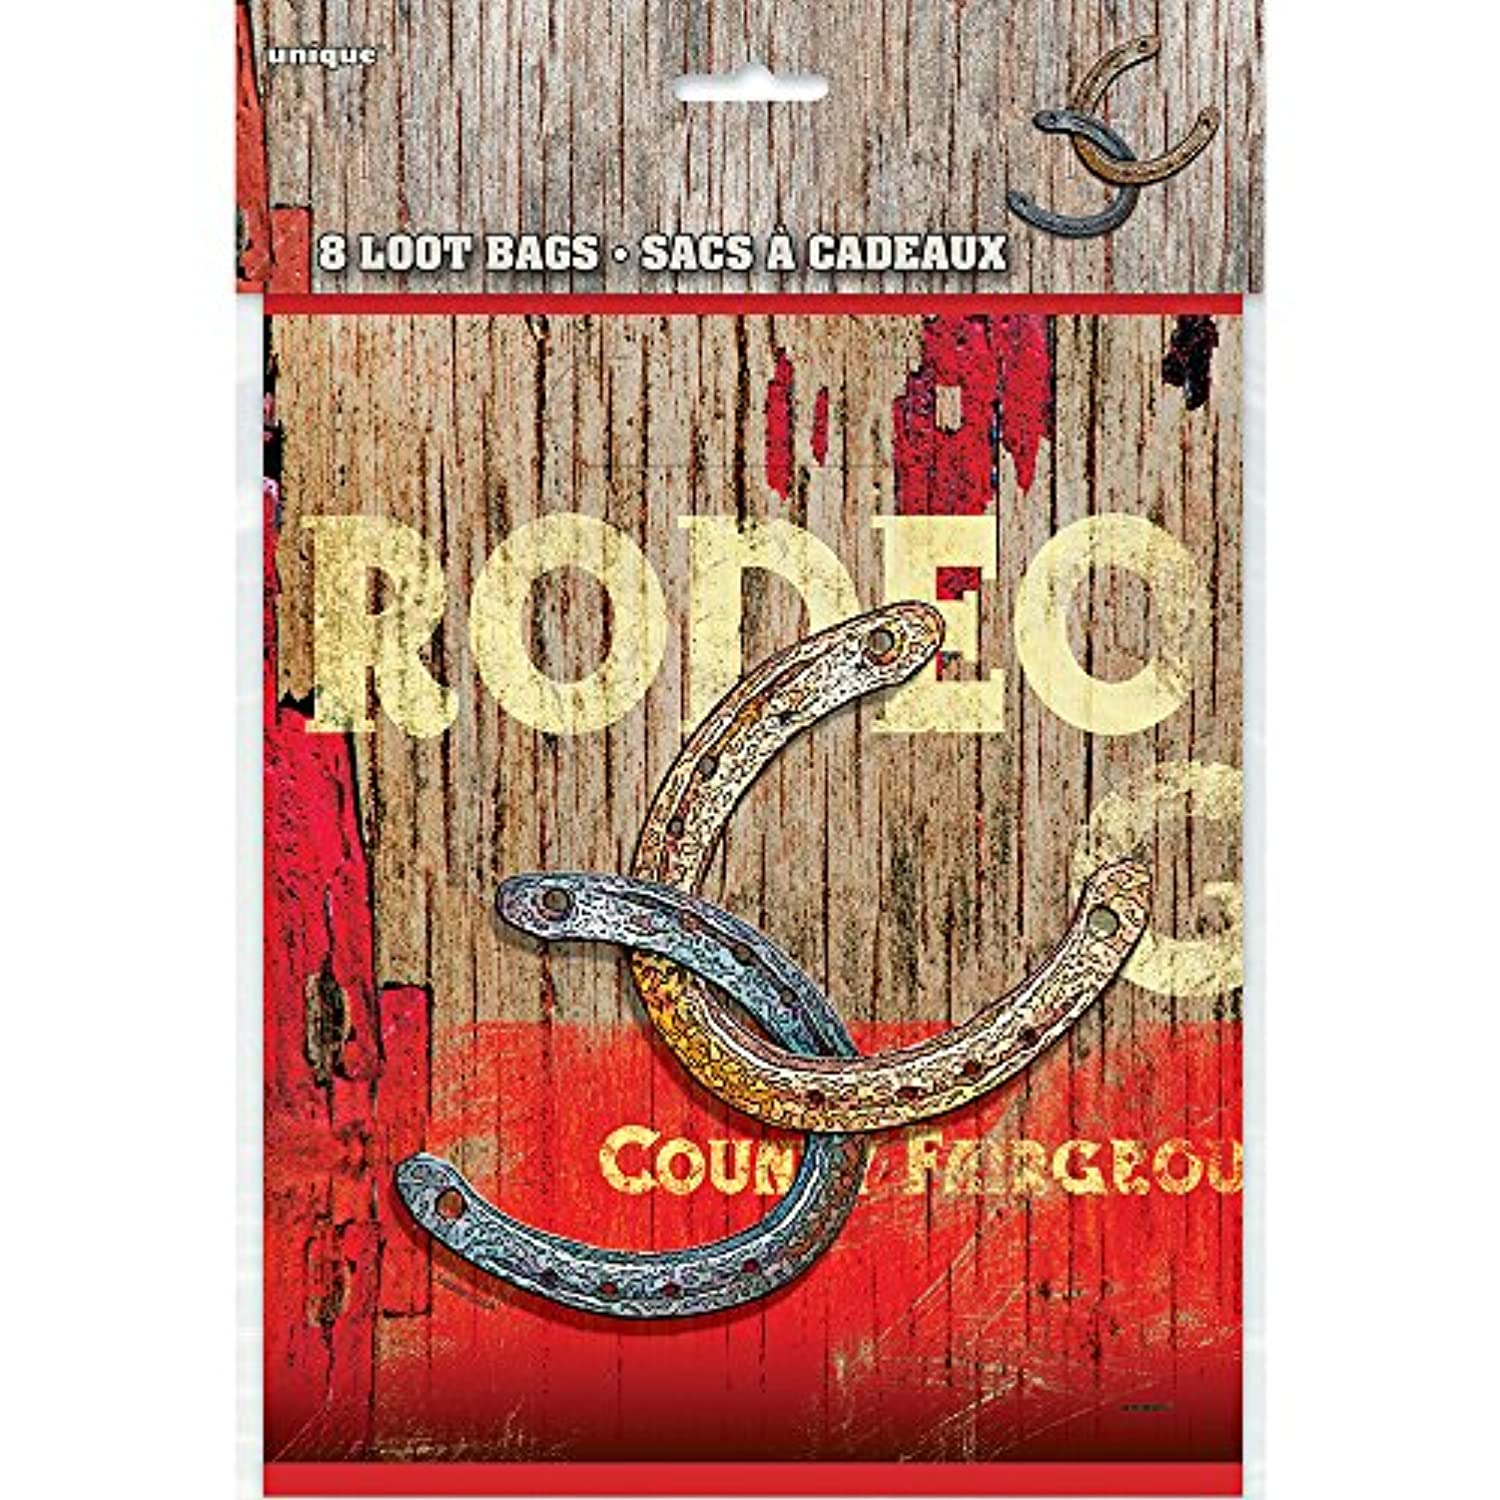 (Loot Bags) - Rodeo Western Party Bags, Pack of 8